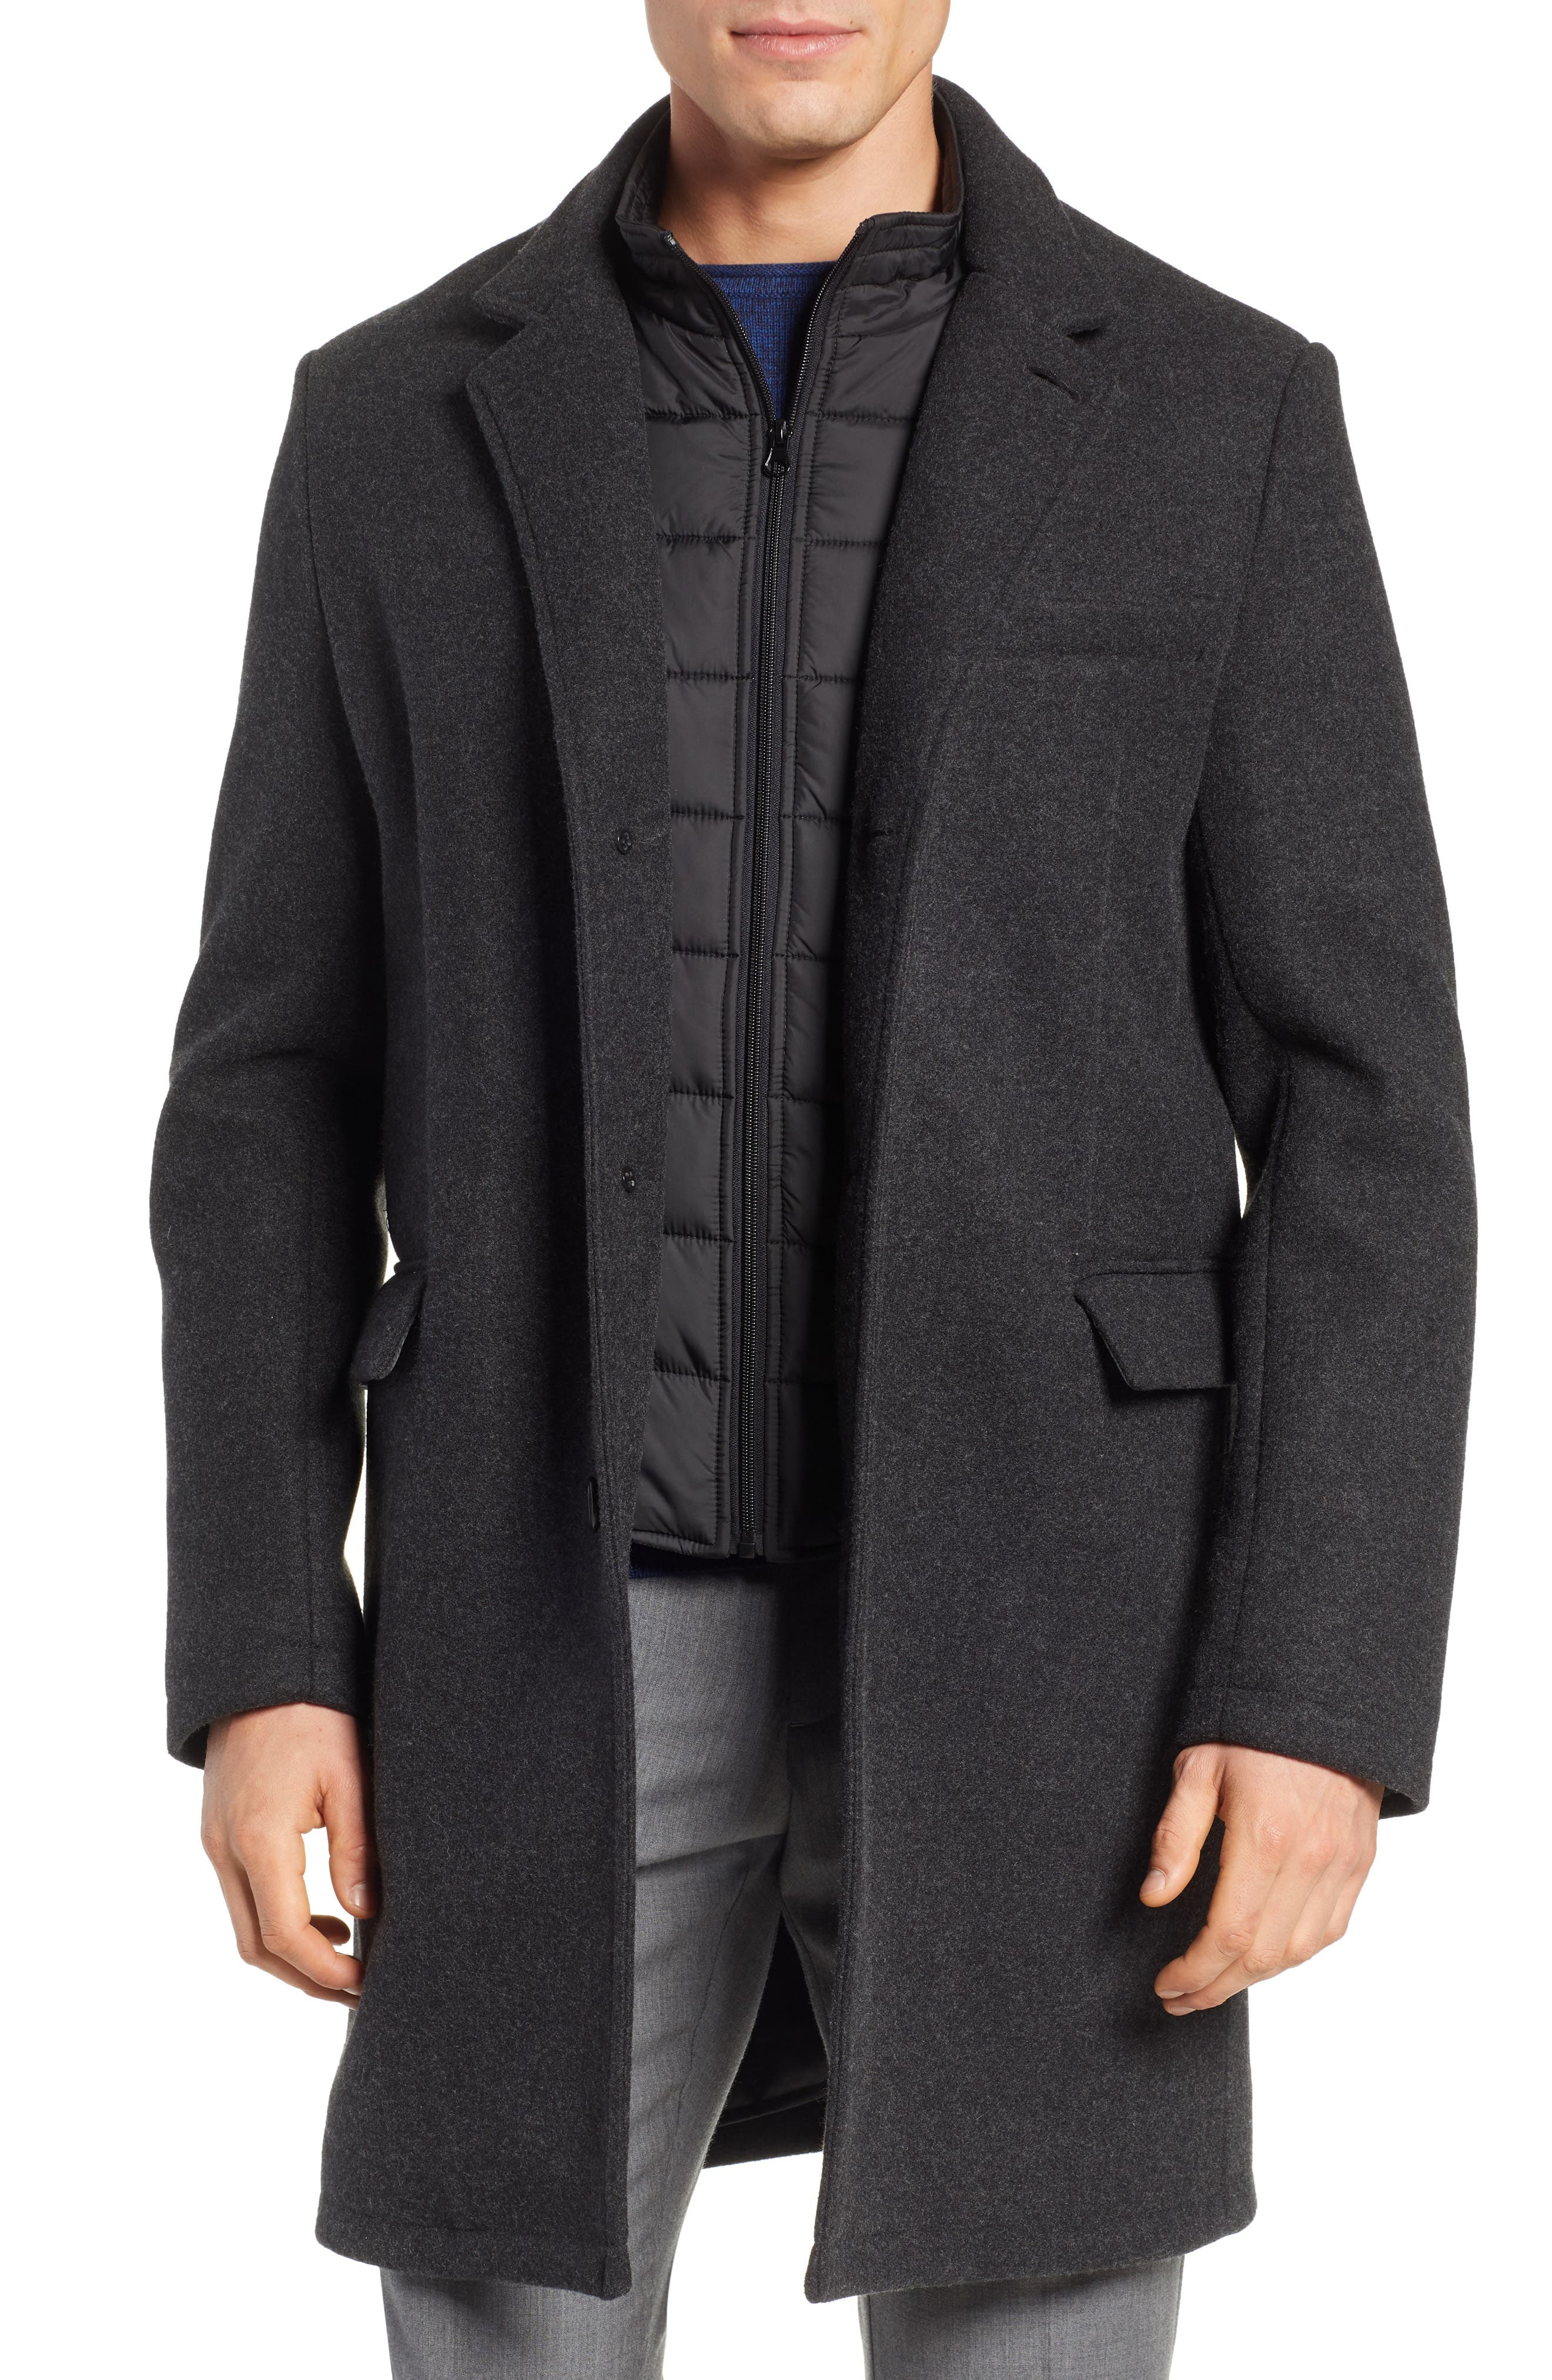 Westcott Wool Car Coat,                         Main,                         color, 001